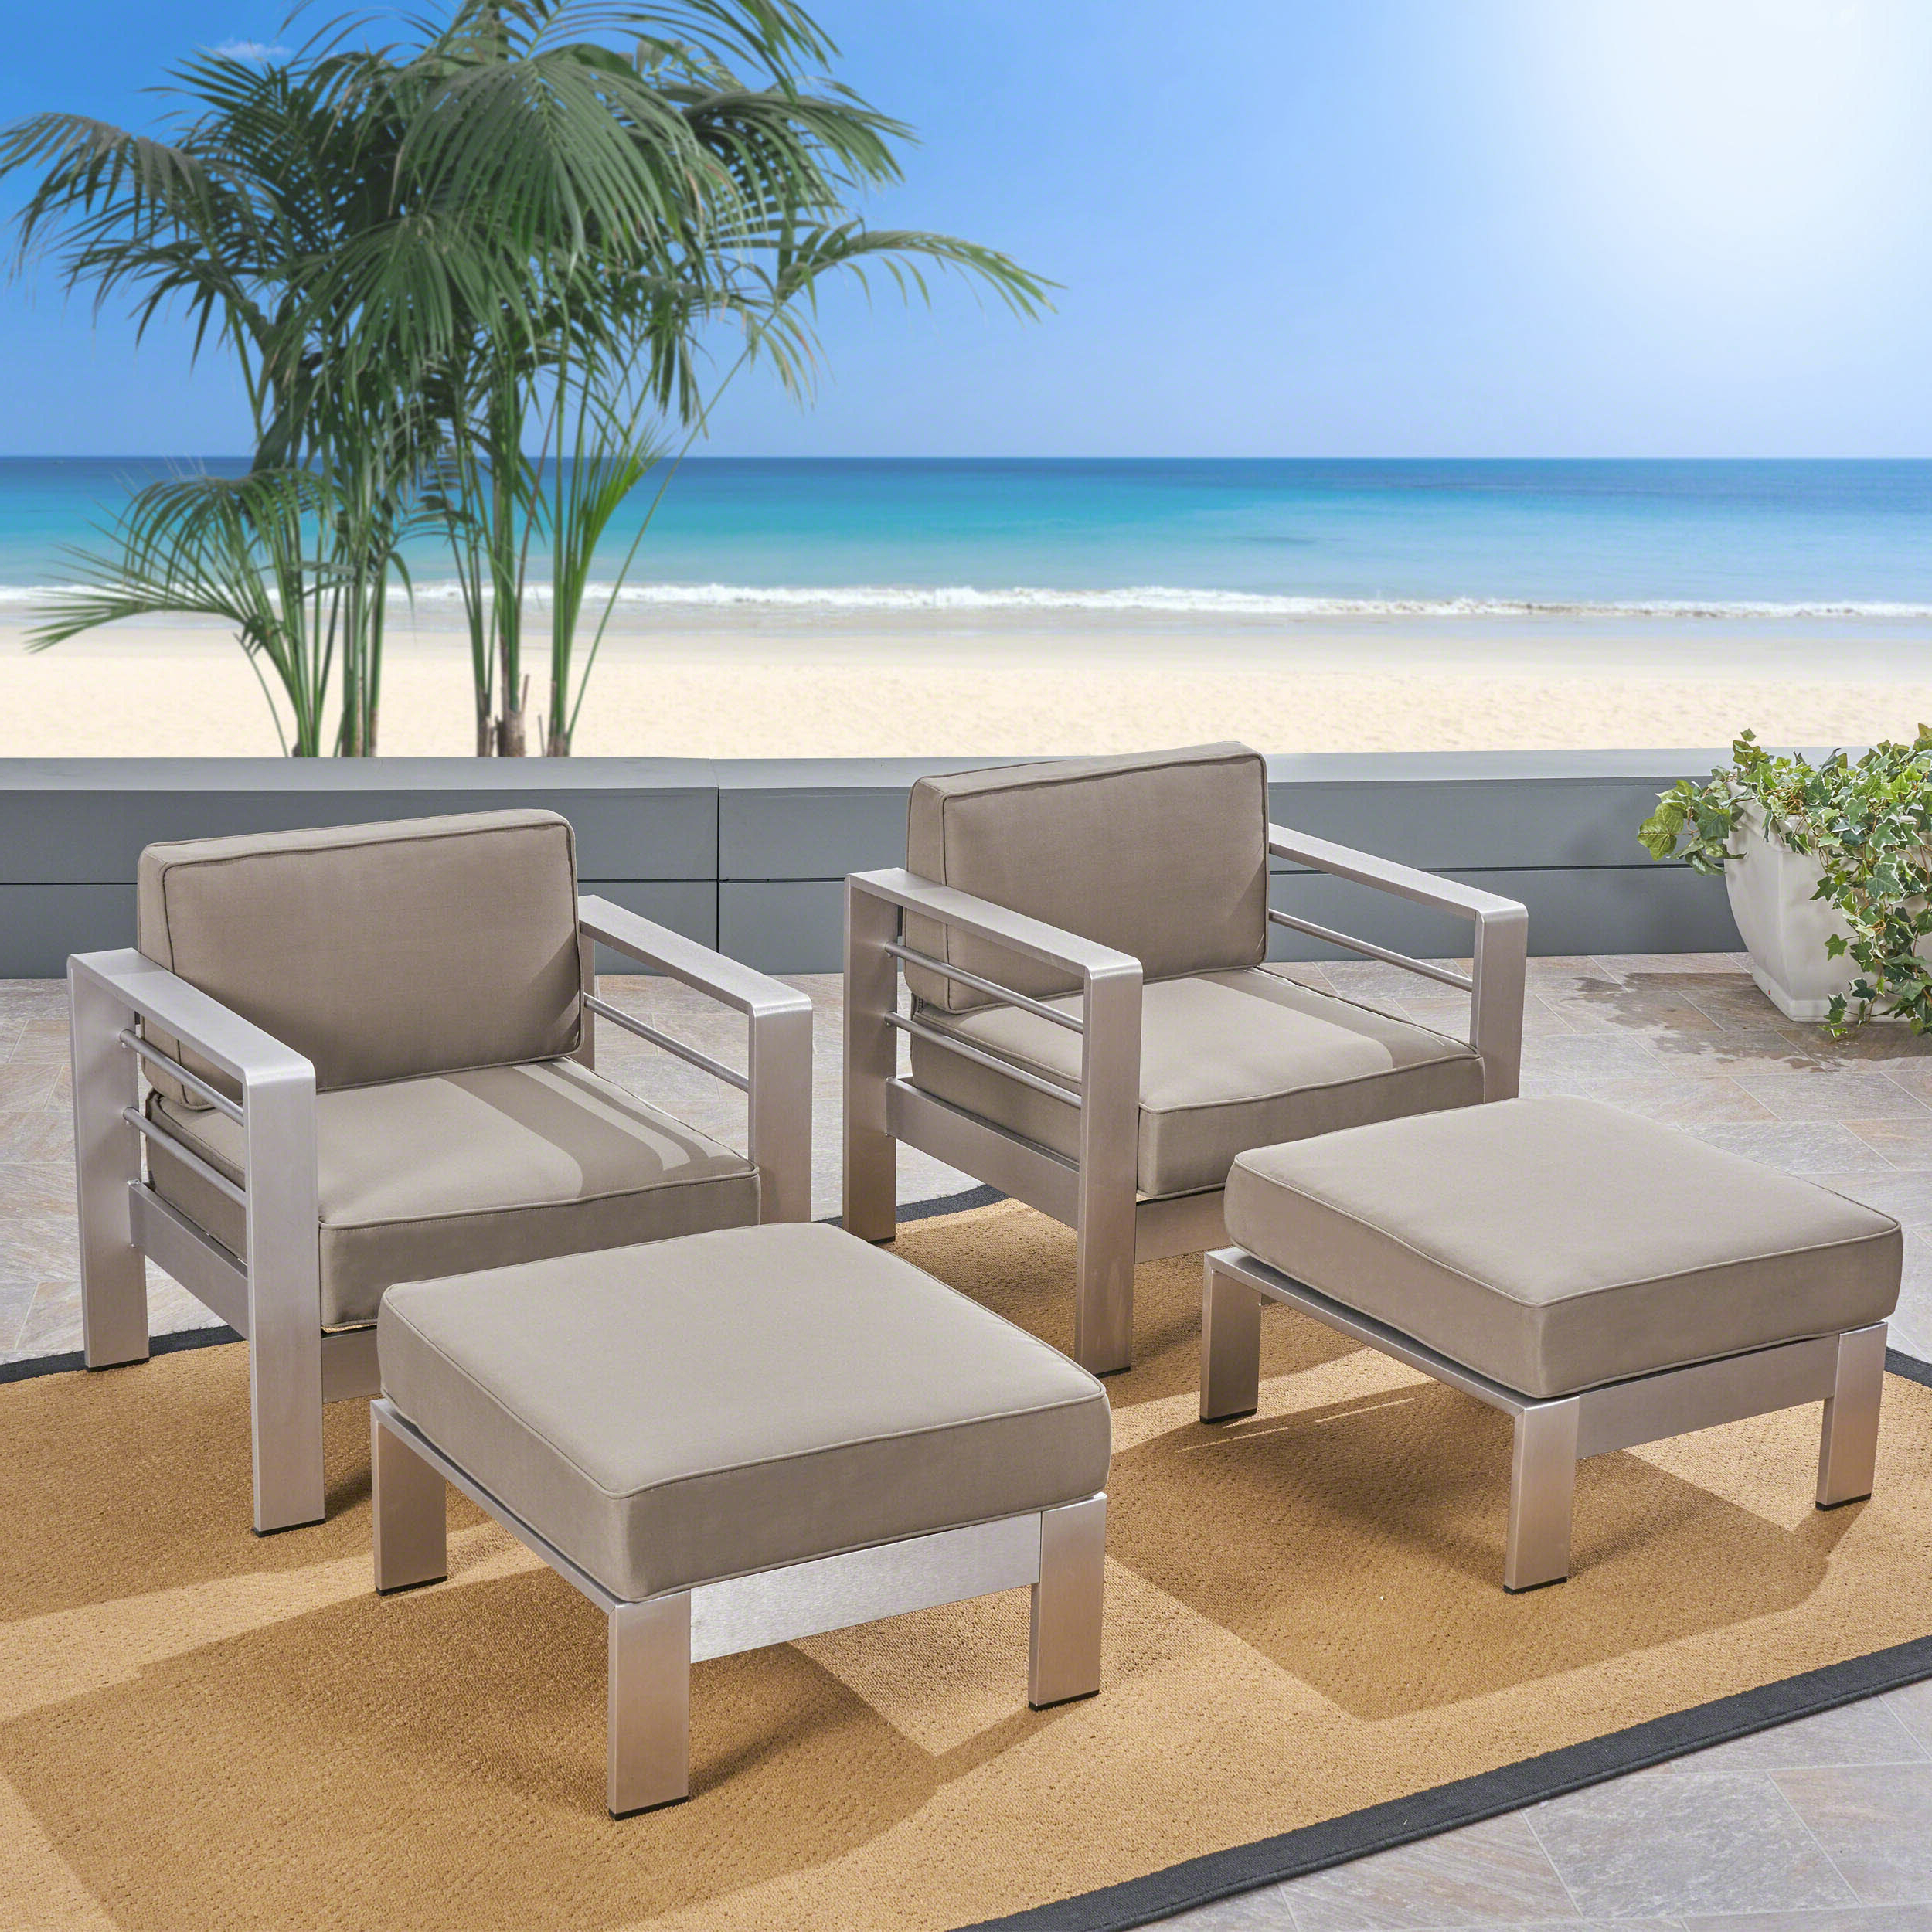 Widely Used Royalston Patio Sofas With Cushions Throughout Royalston Patio Chair With Cushions (View 20 of 20)